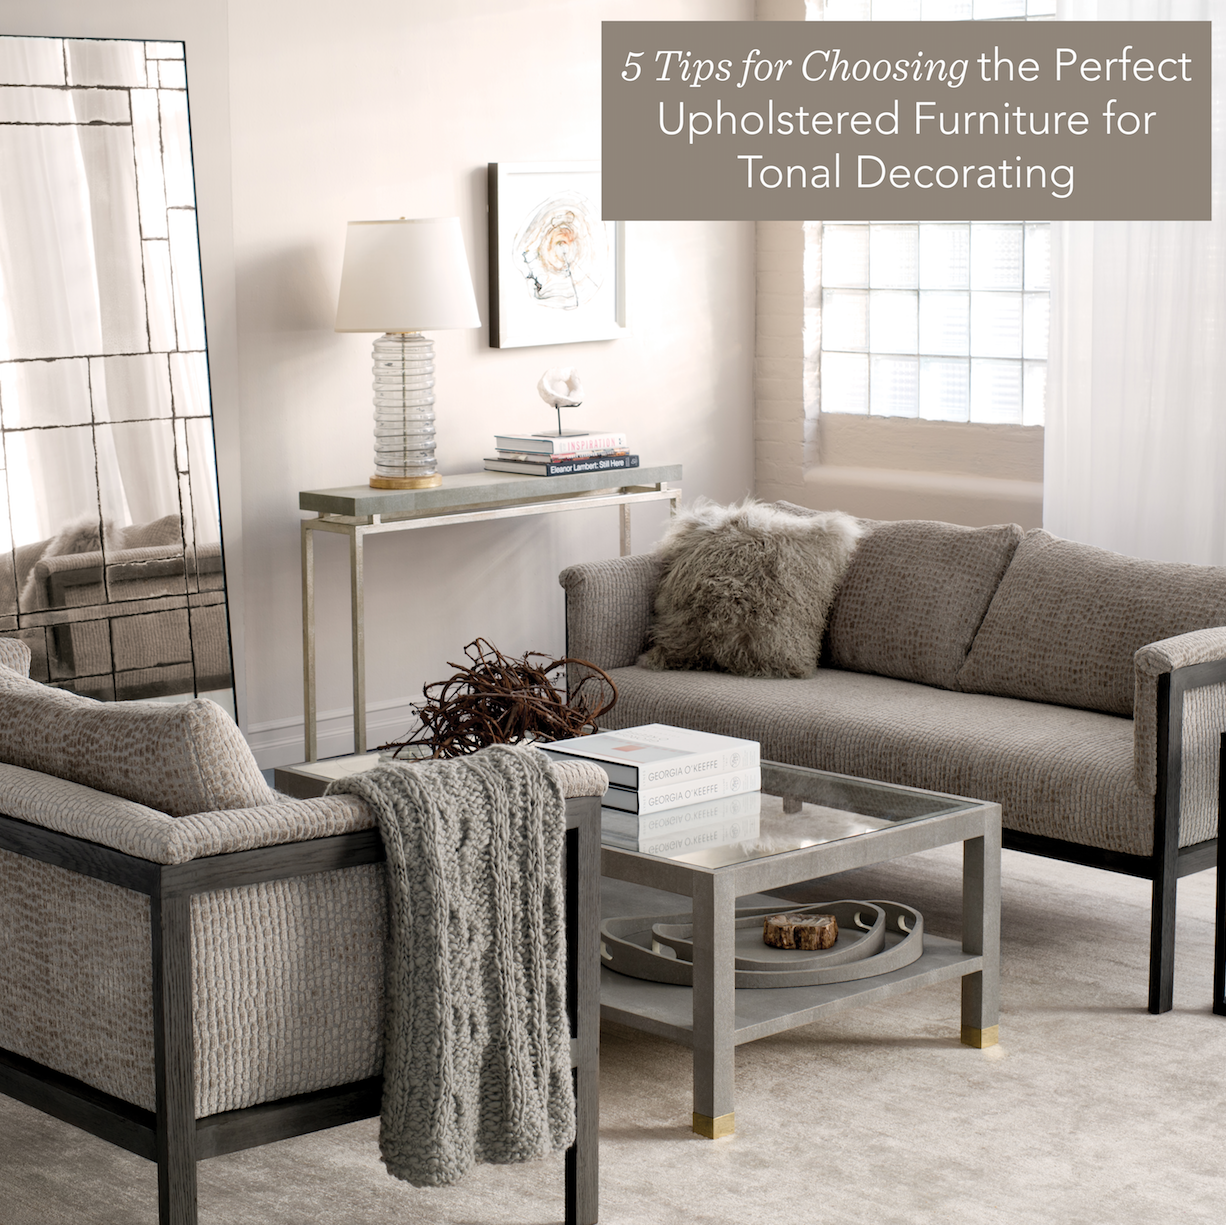 5 tips for choosing the perfect upholstered furniture for tonal